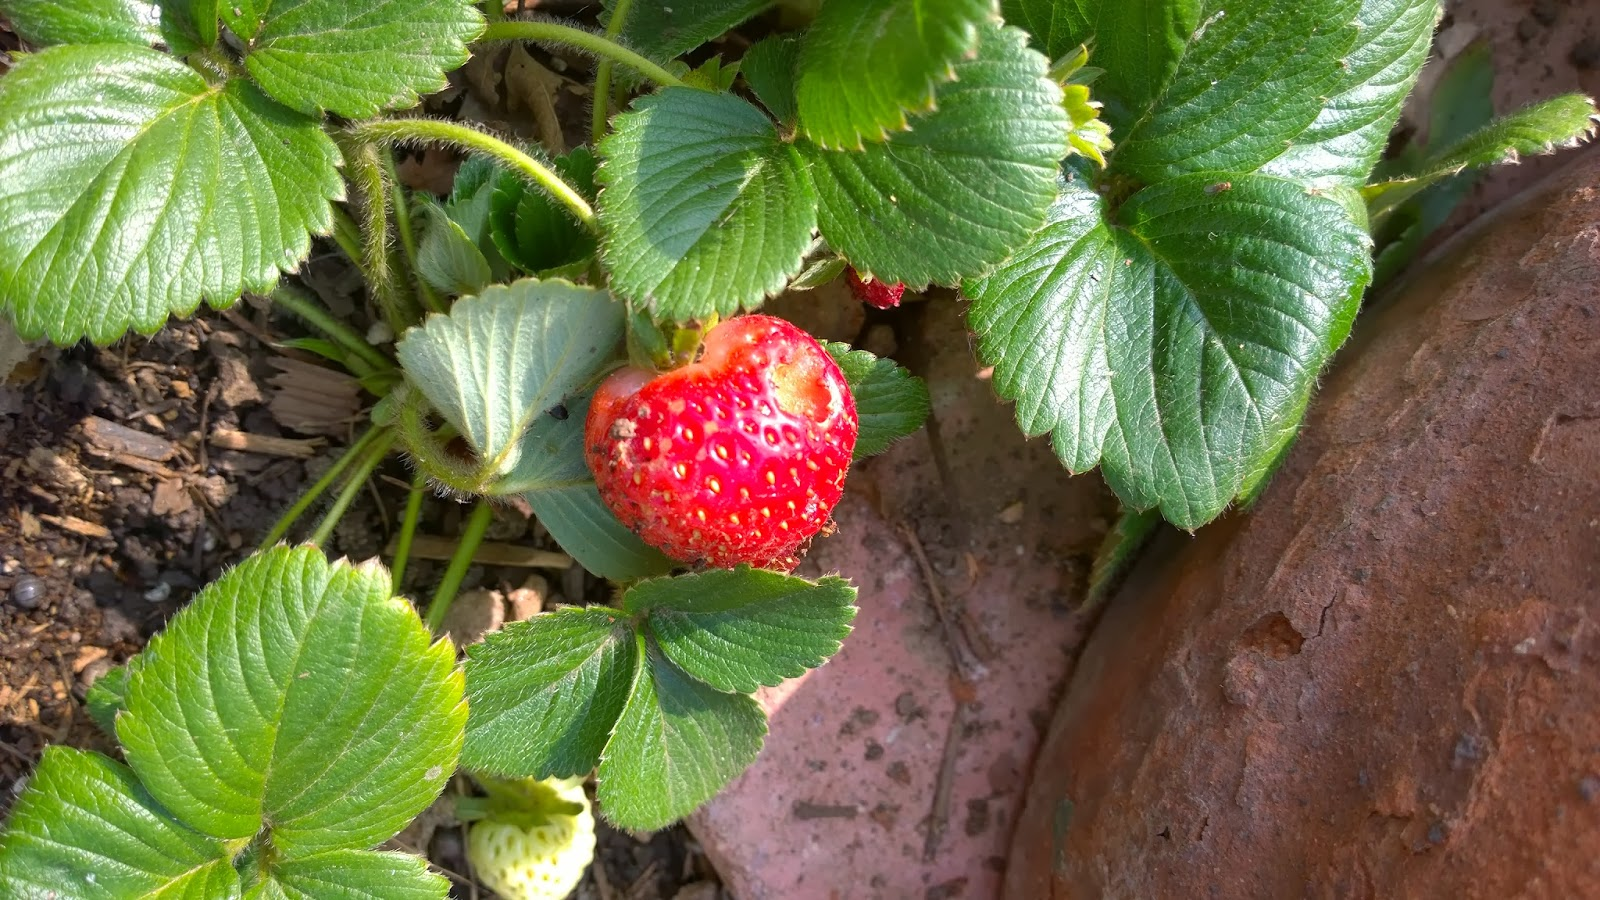 Sunny simple life growing strawberries ideas for the spring garden - Plant strawberries spring ...